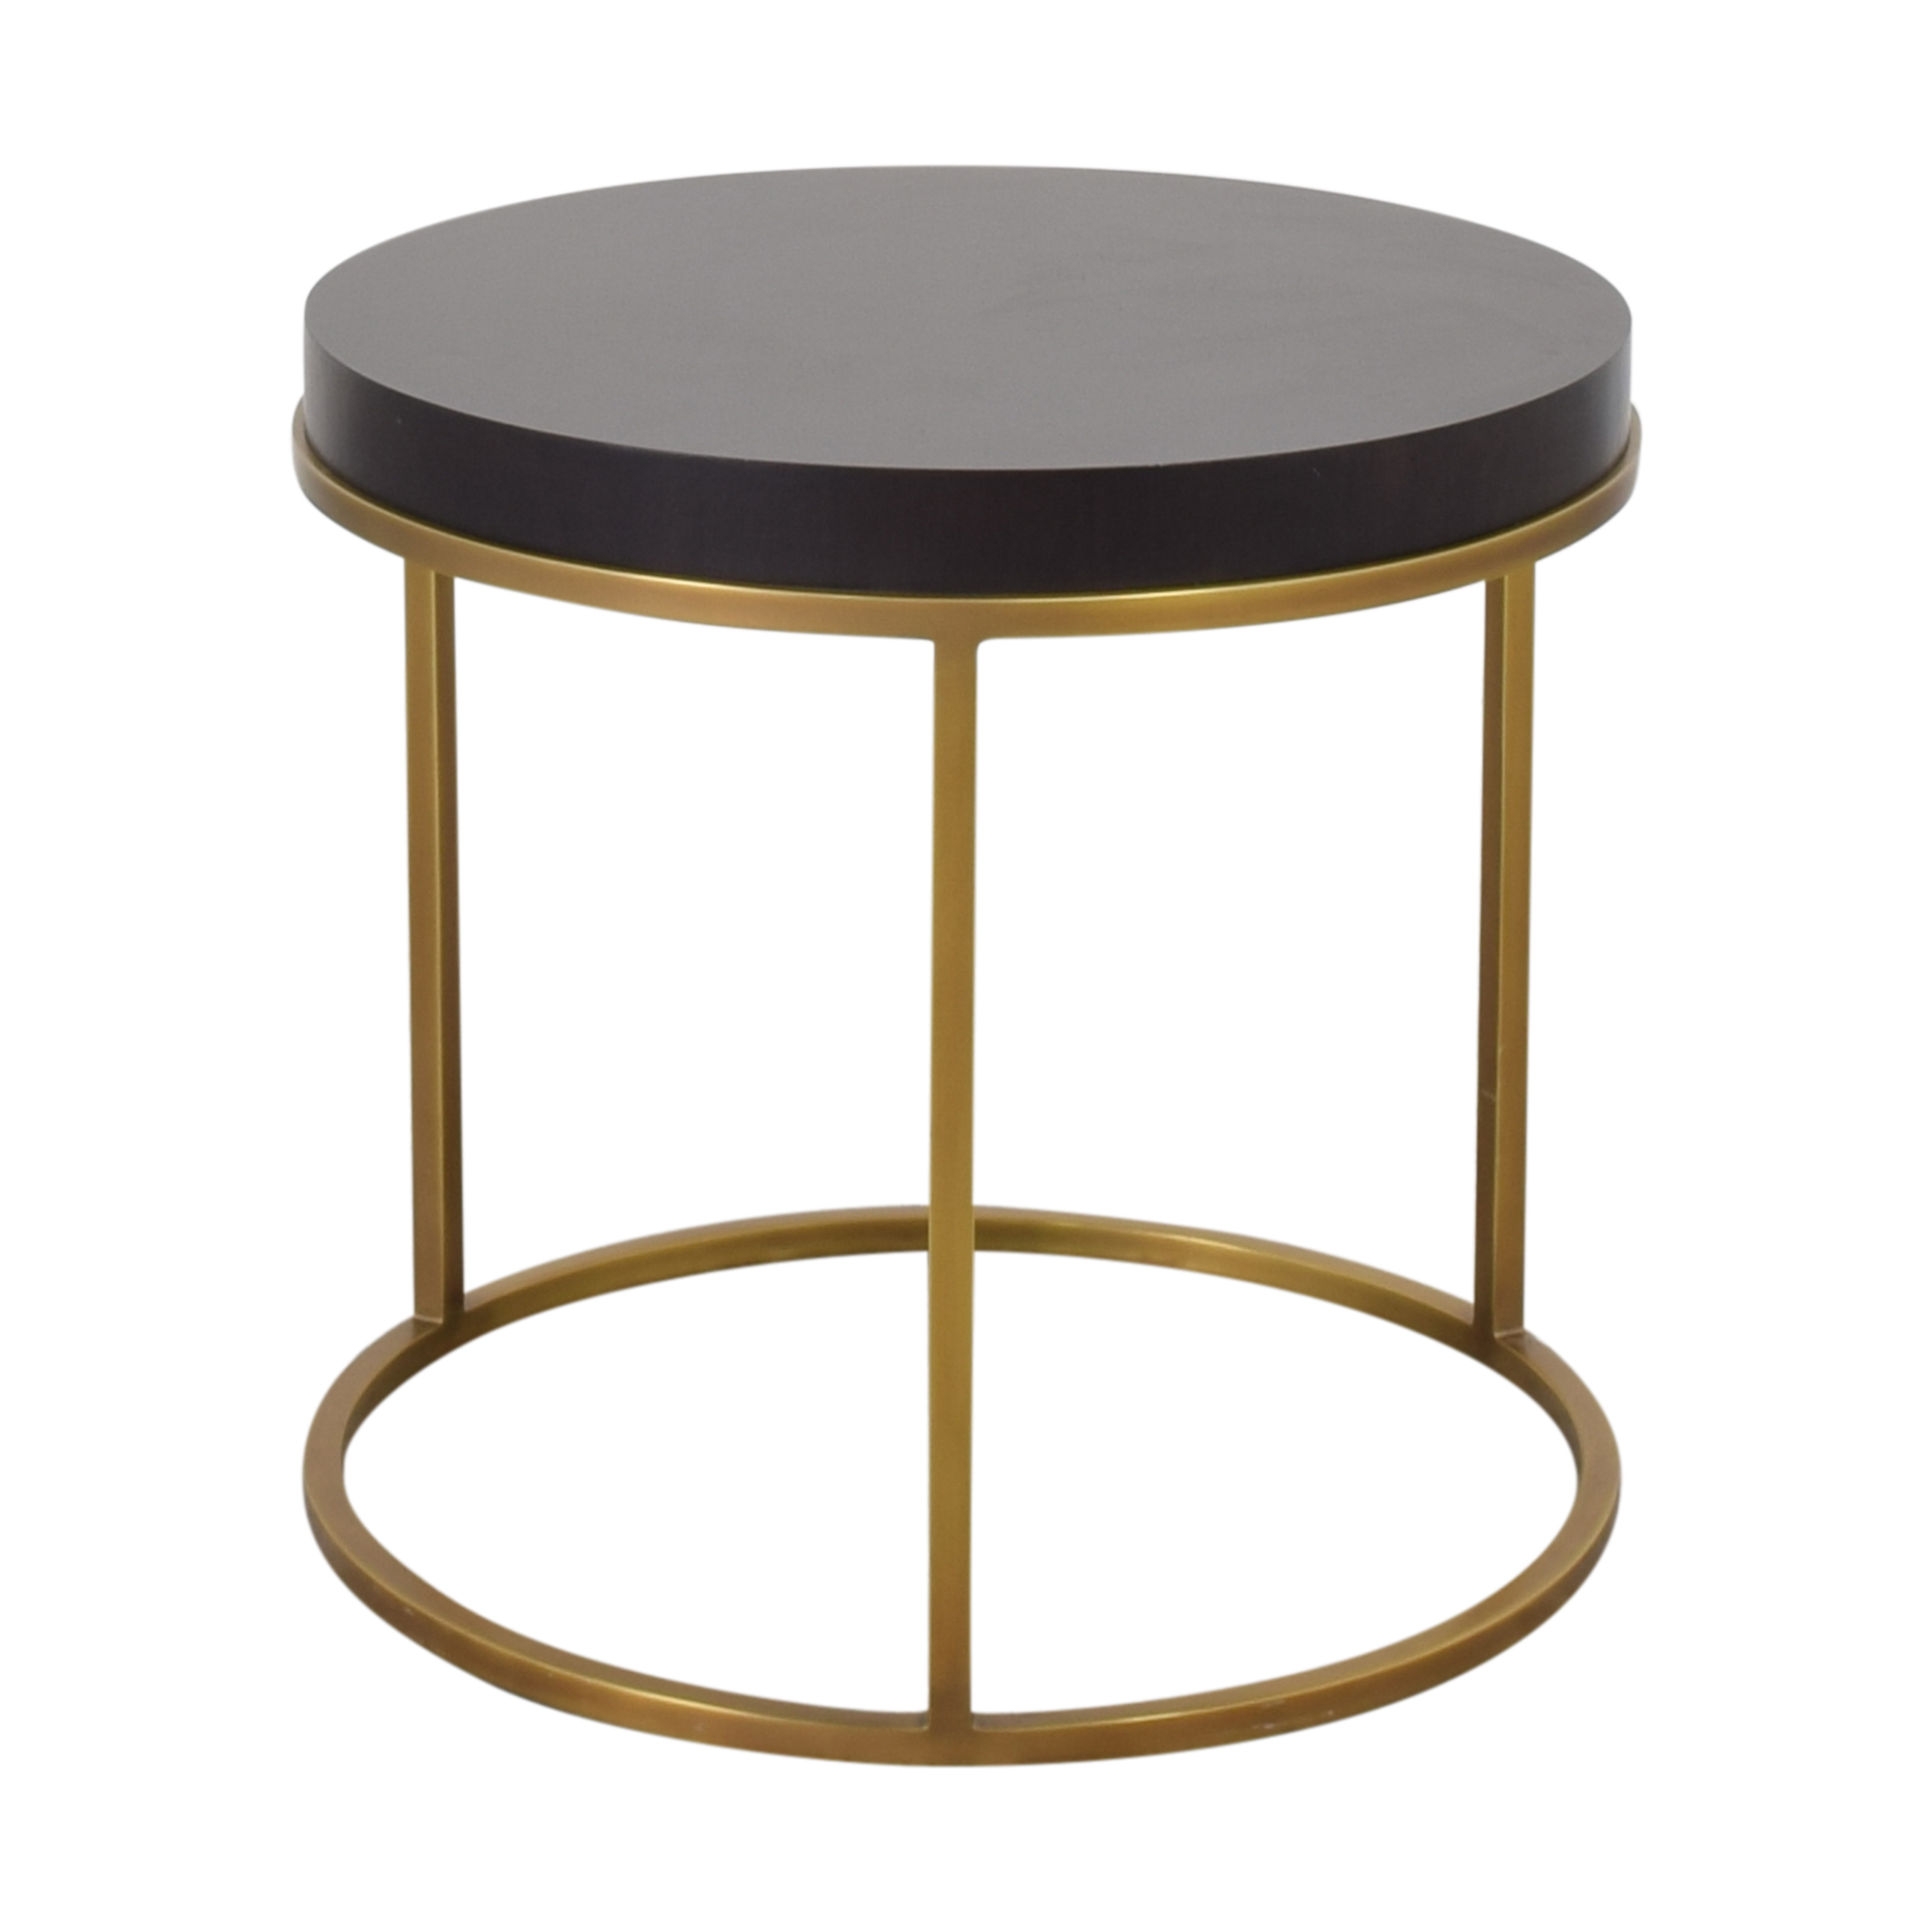 Restoration Hardware Restoration Hardware Nicholas Round Side Table Tables